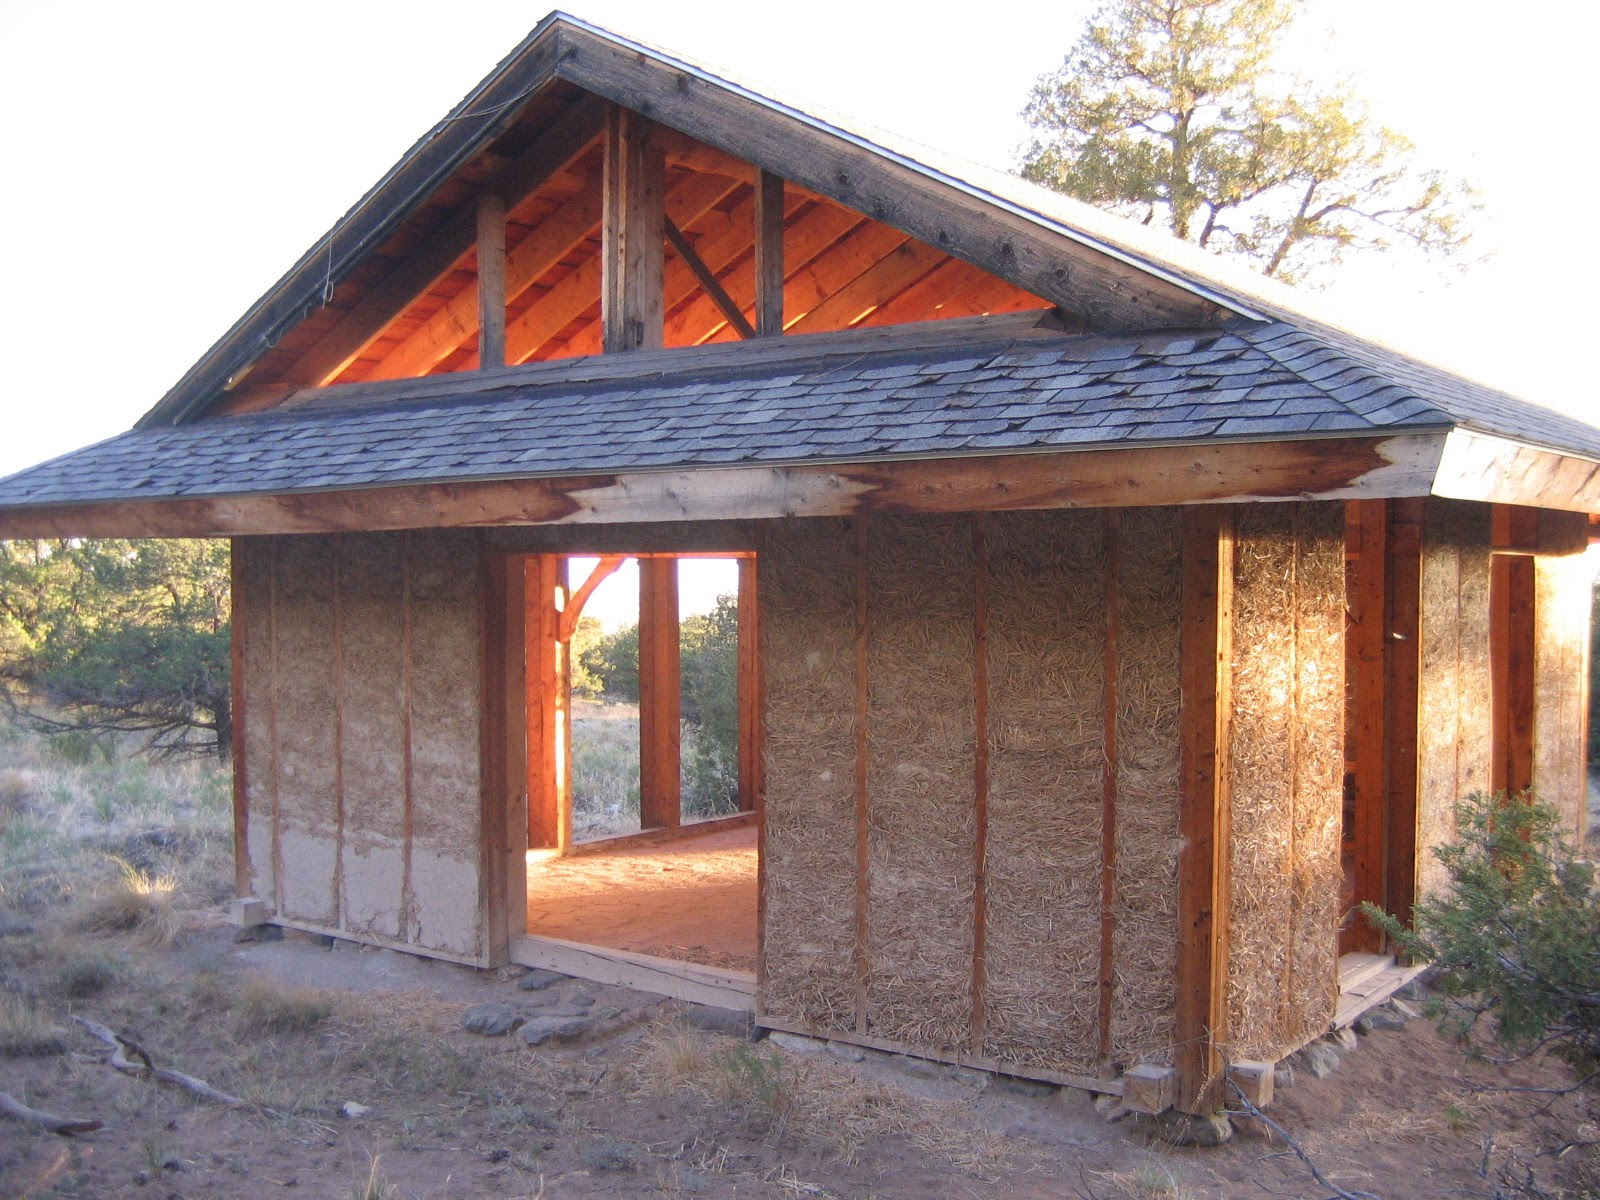 Timberframe And Straw/clay House In Crestone, Colorado (click To Enlarge)